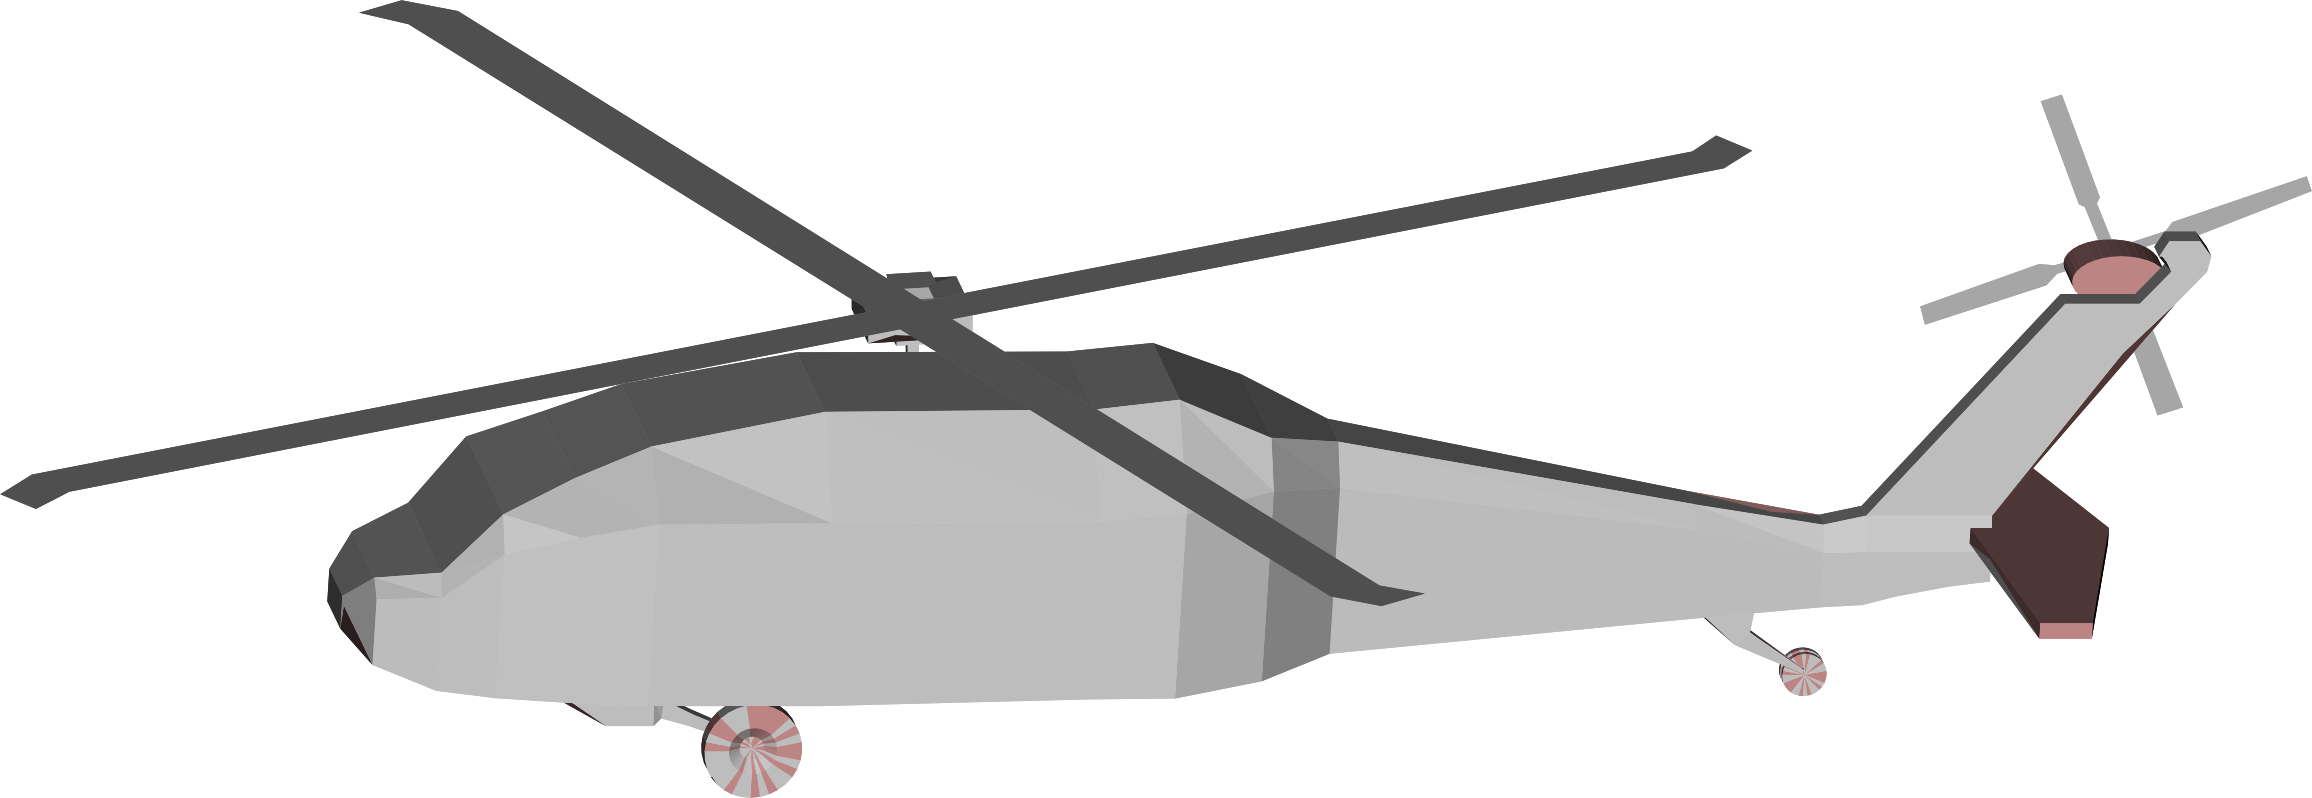 3D Low Poly Blackhawk Helicopter by GDJ